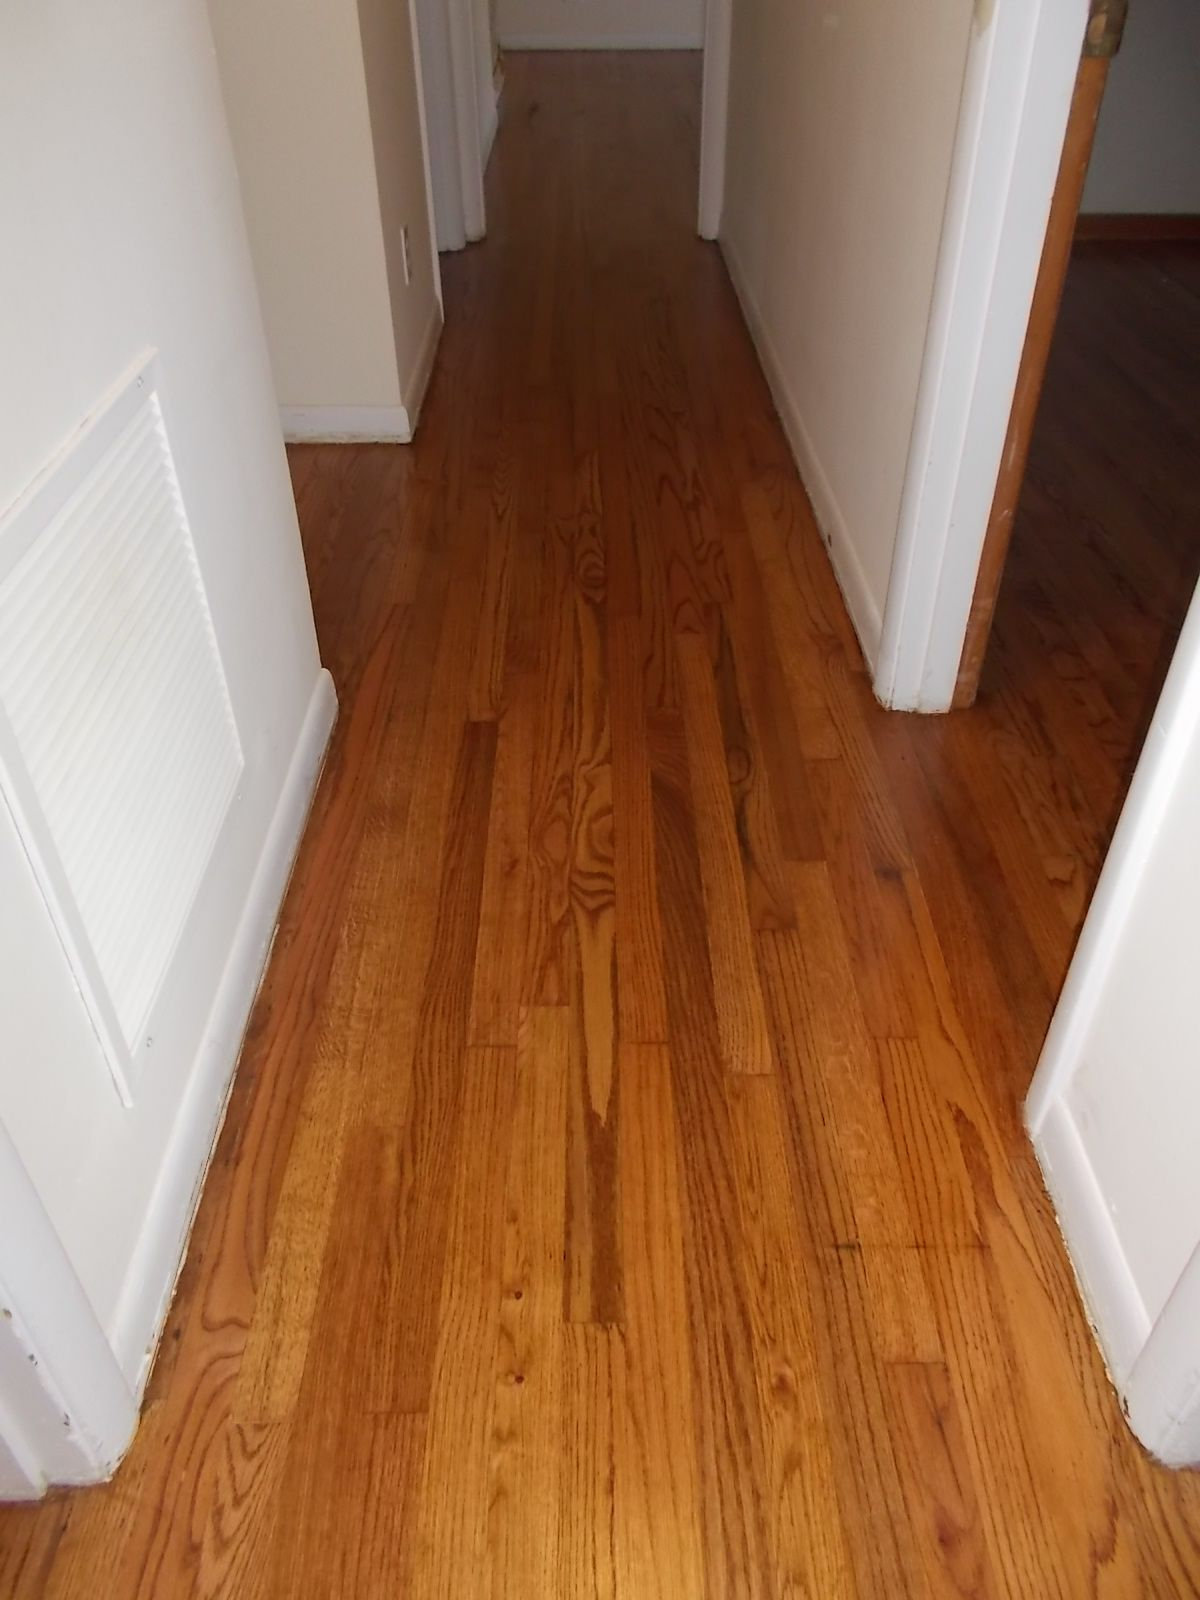 Very Hallway, red oak, Minwax Early American, satin finish | New house  BA62